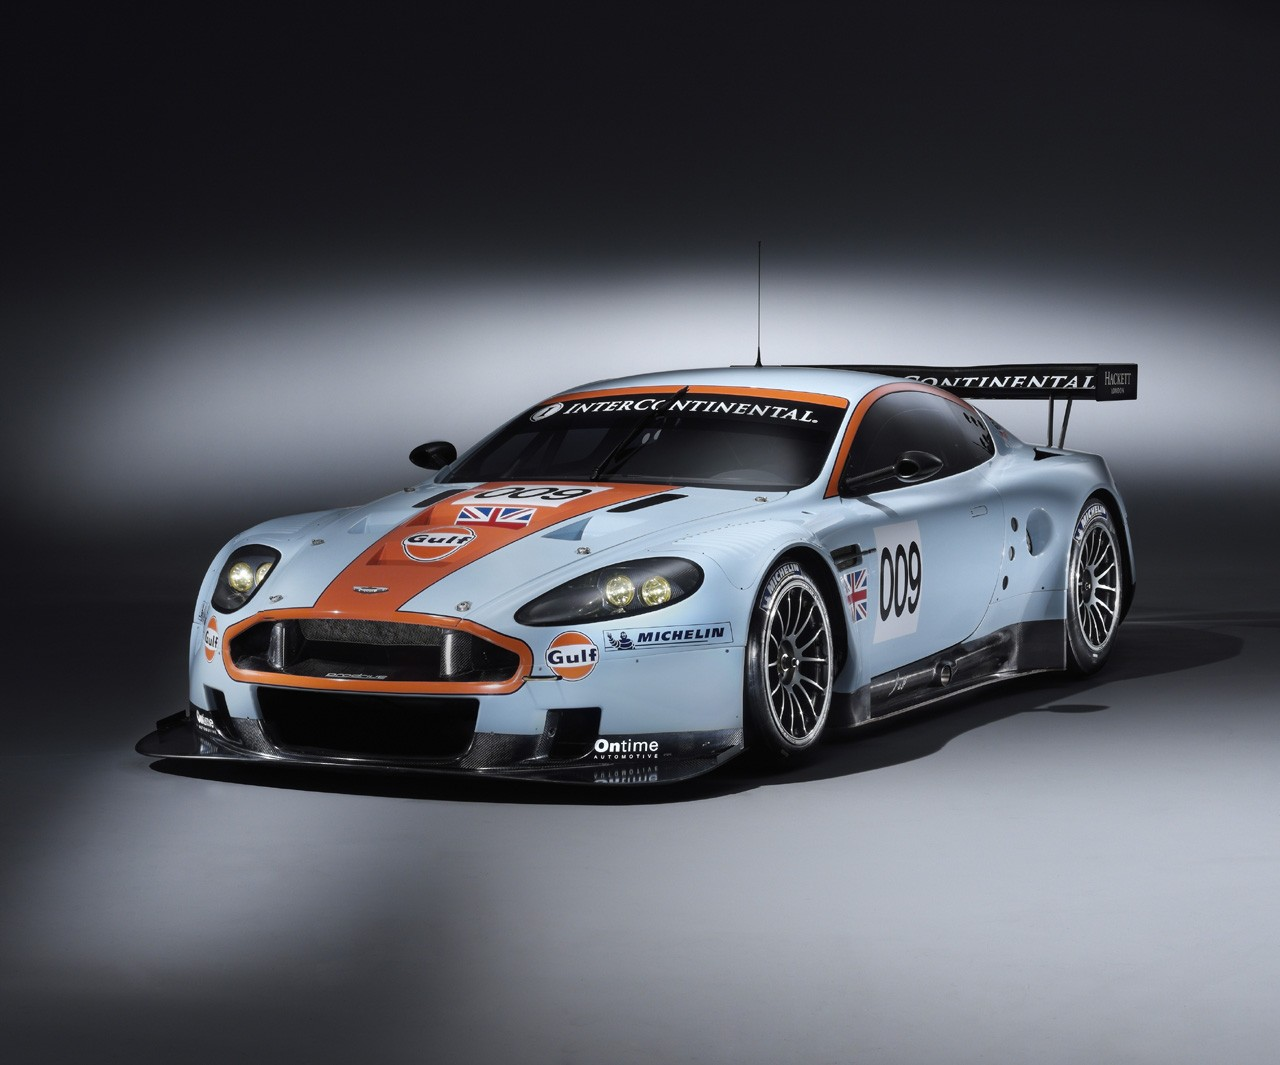 Aston Martin Screen Saver 1